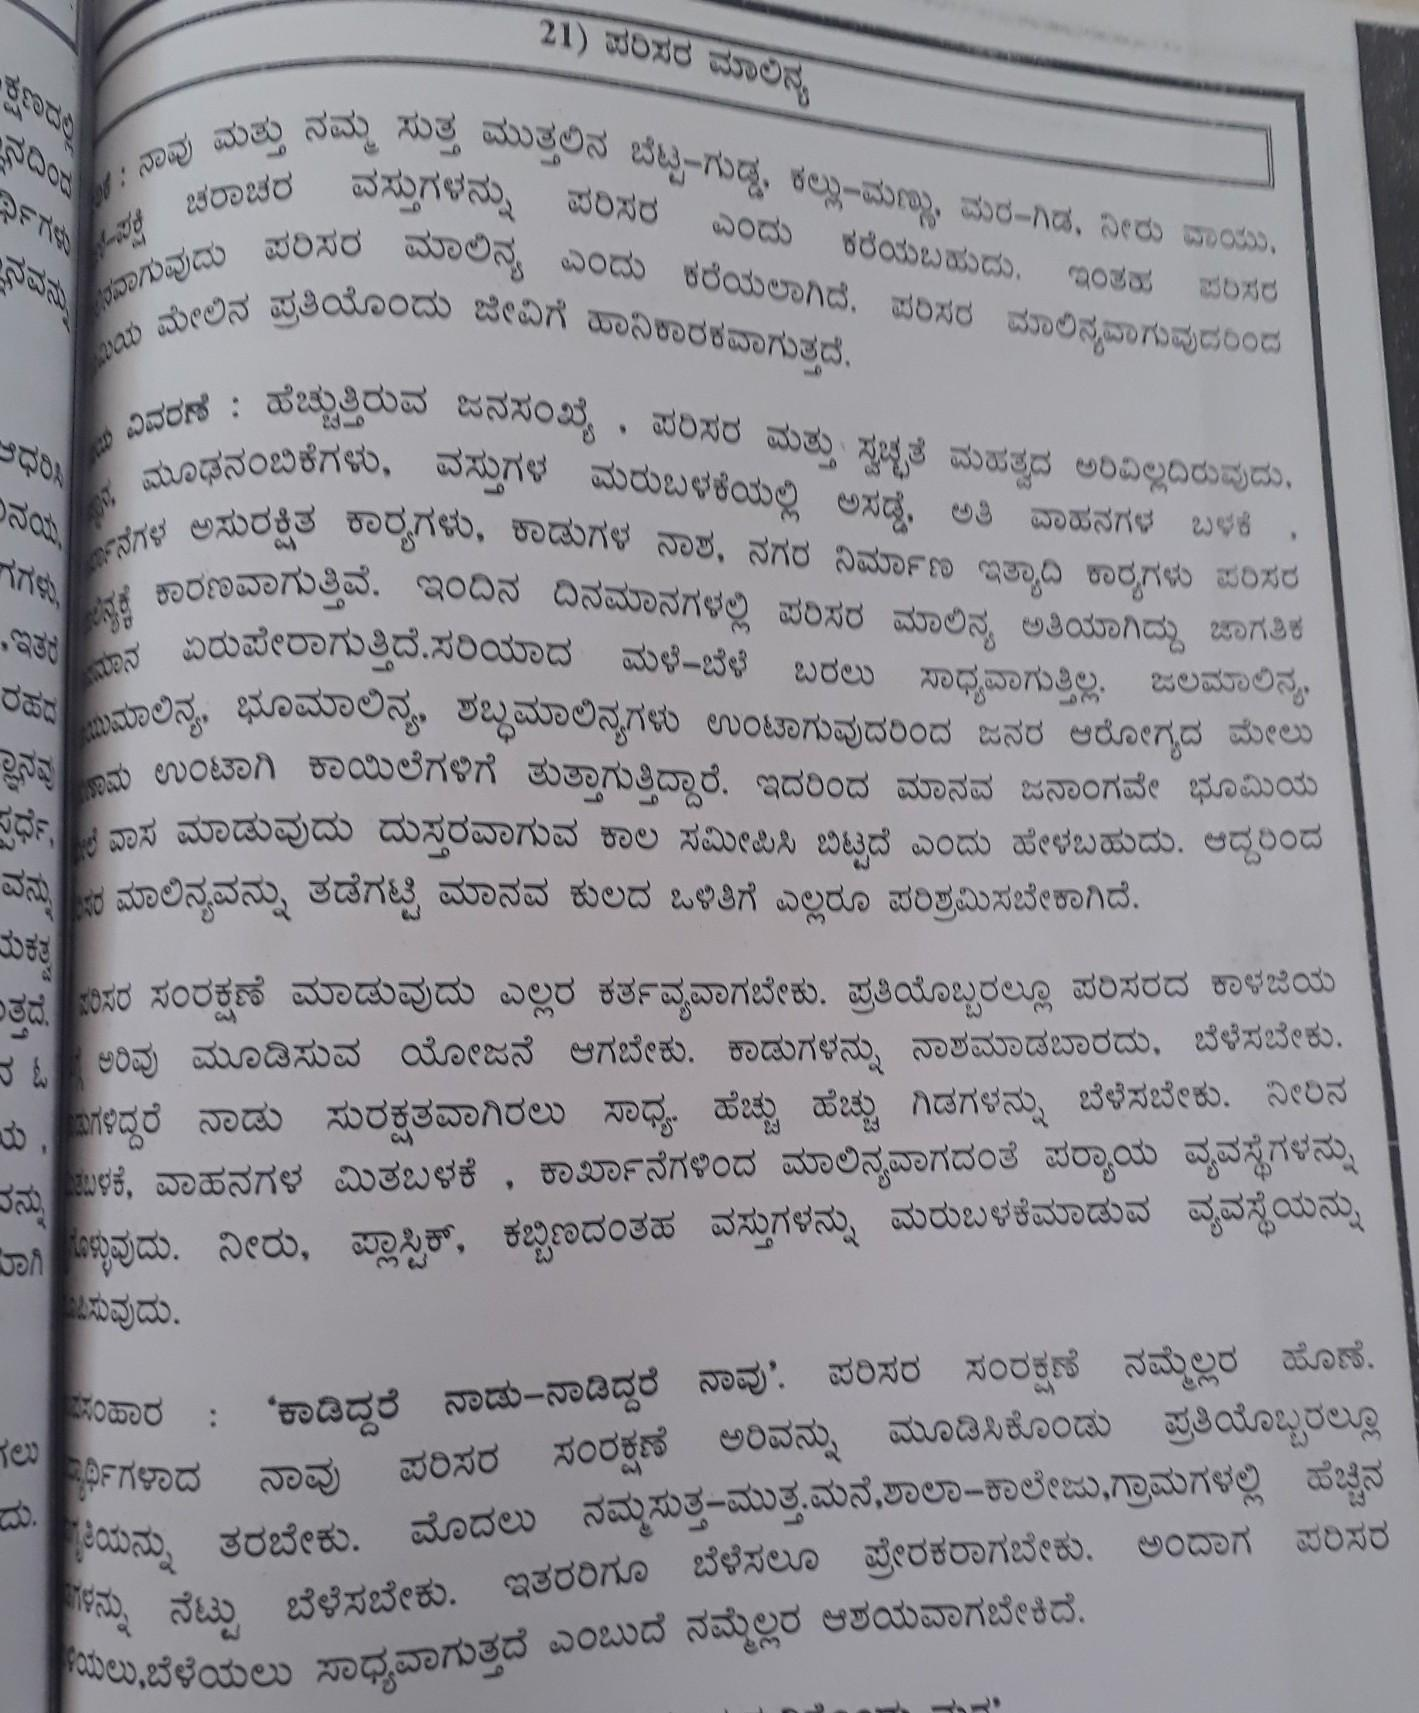 parisara malinya essay in kannada language